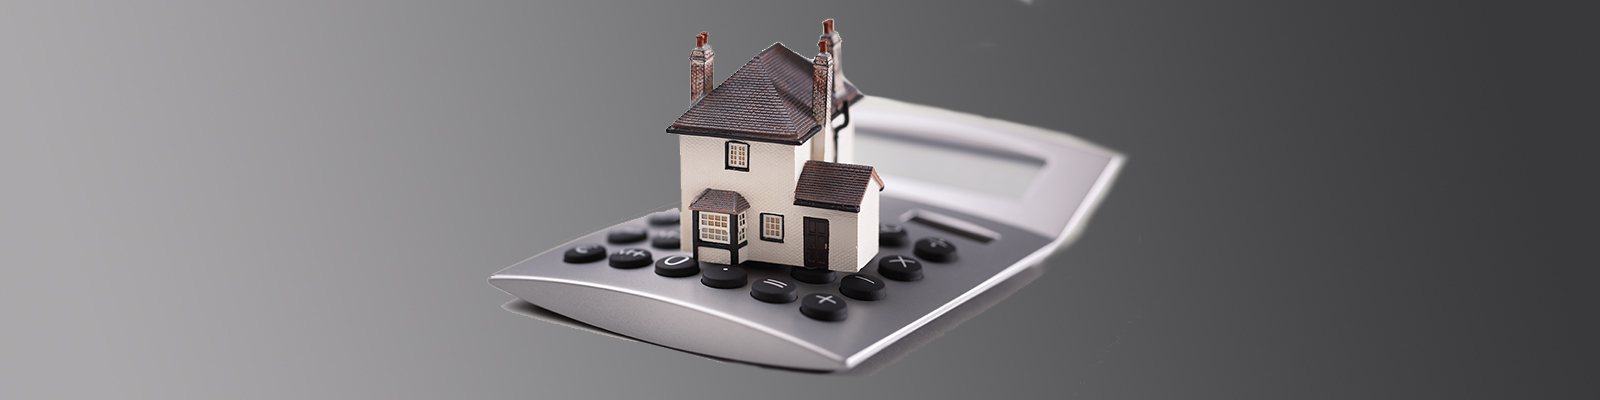 mortgage-refinancing-notary